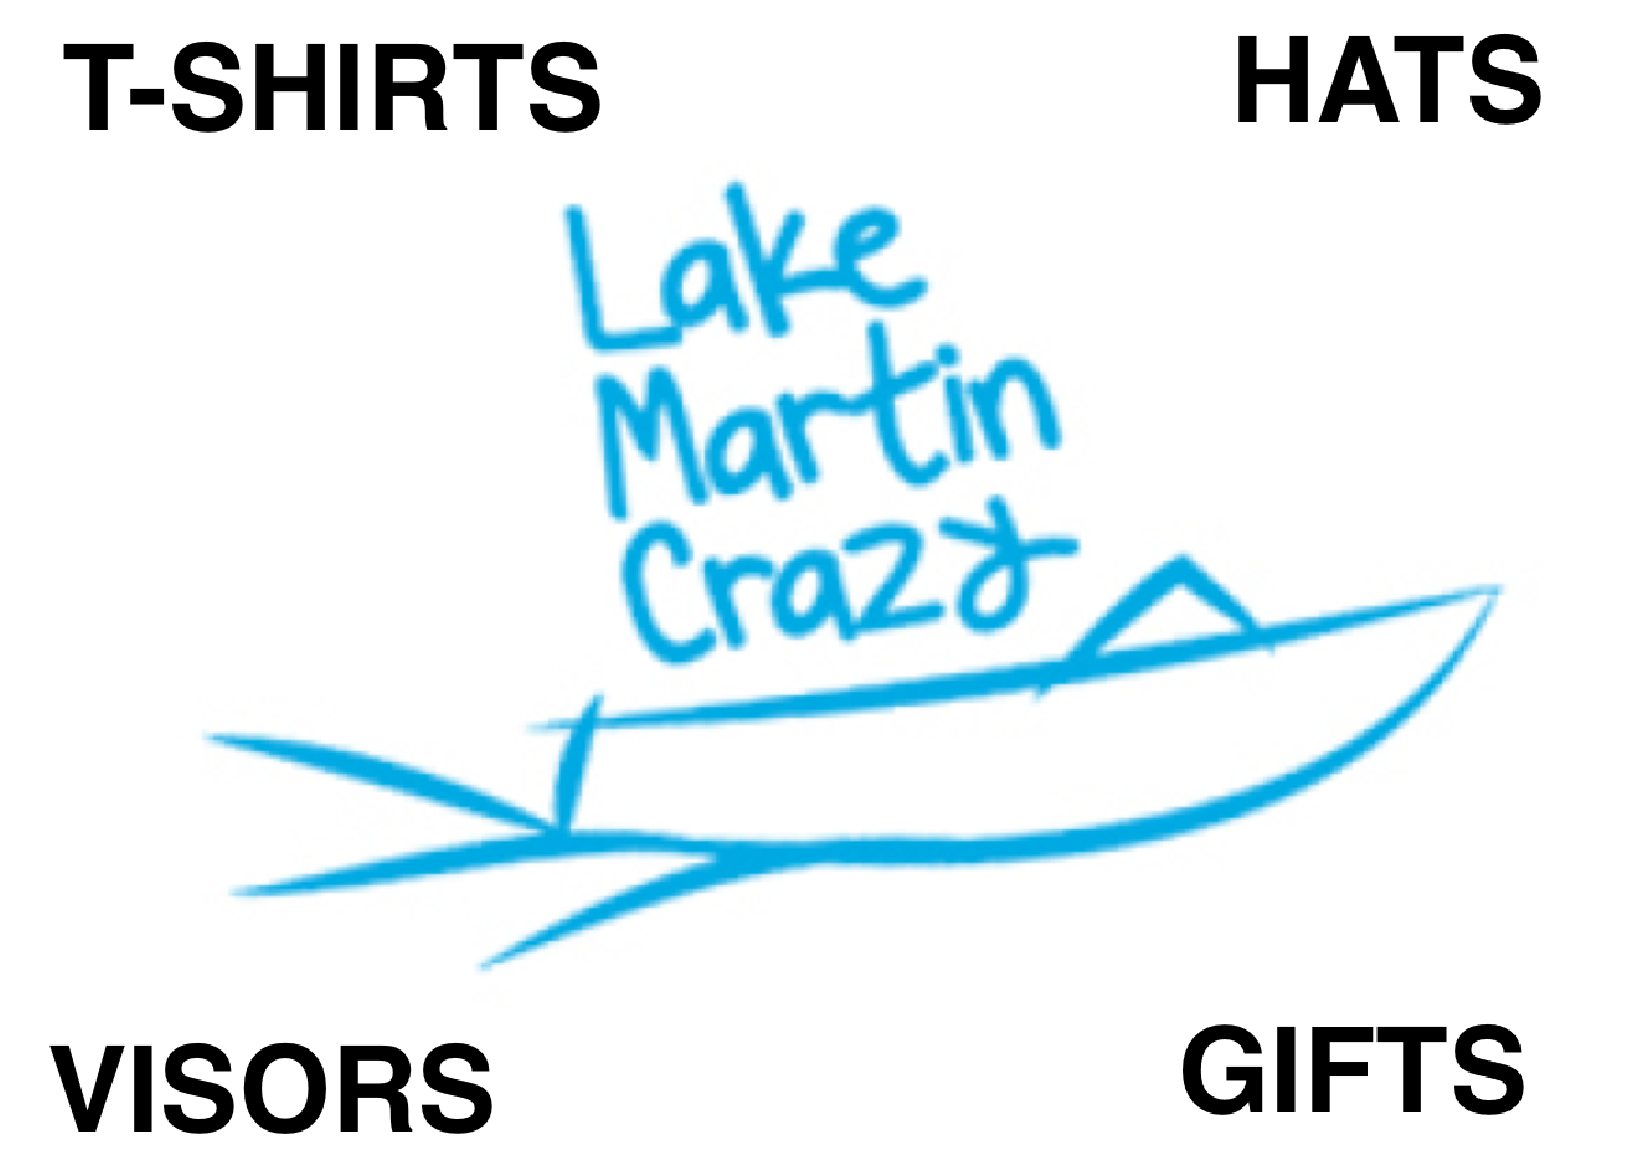 Buy Hyper Local Lake Martin Merchandise!